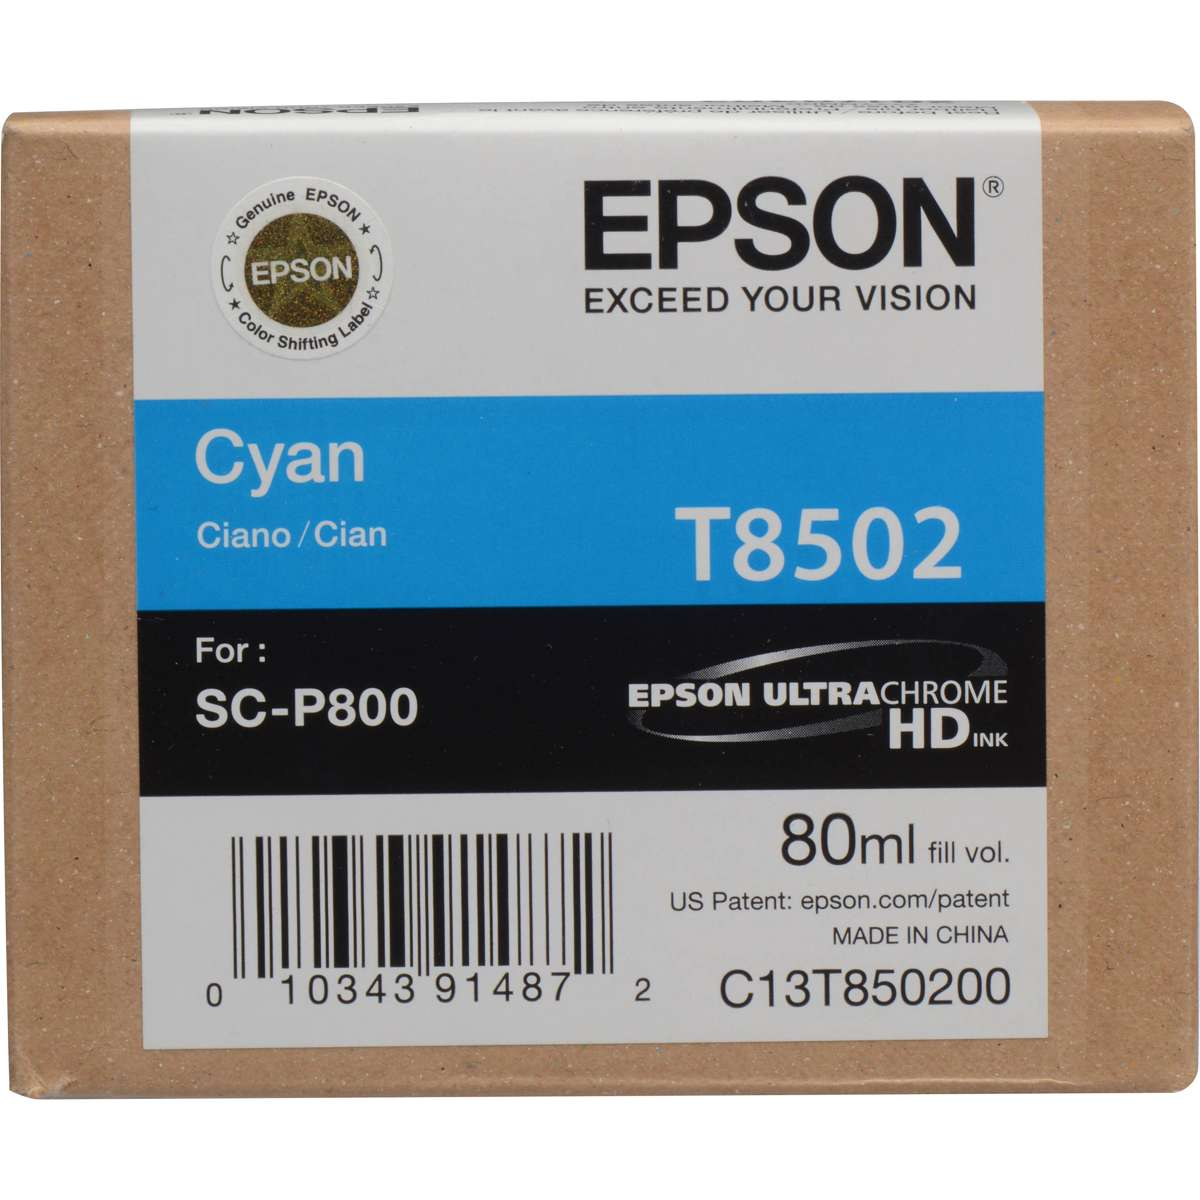 Epson UltraChrome Cyan Ink Cartridge (T850200) Epson SureColor P800 Series  Ink